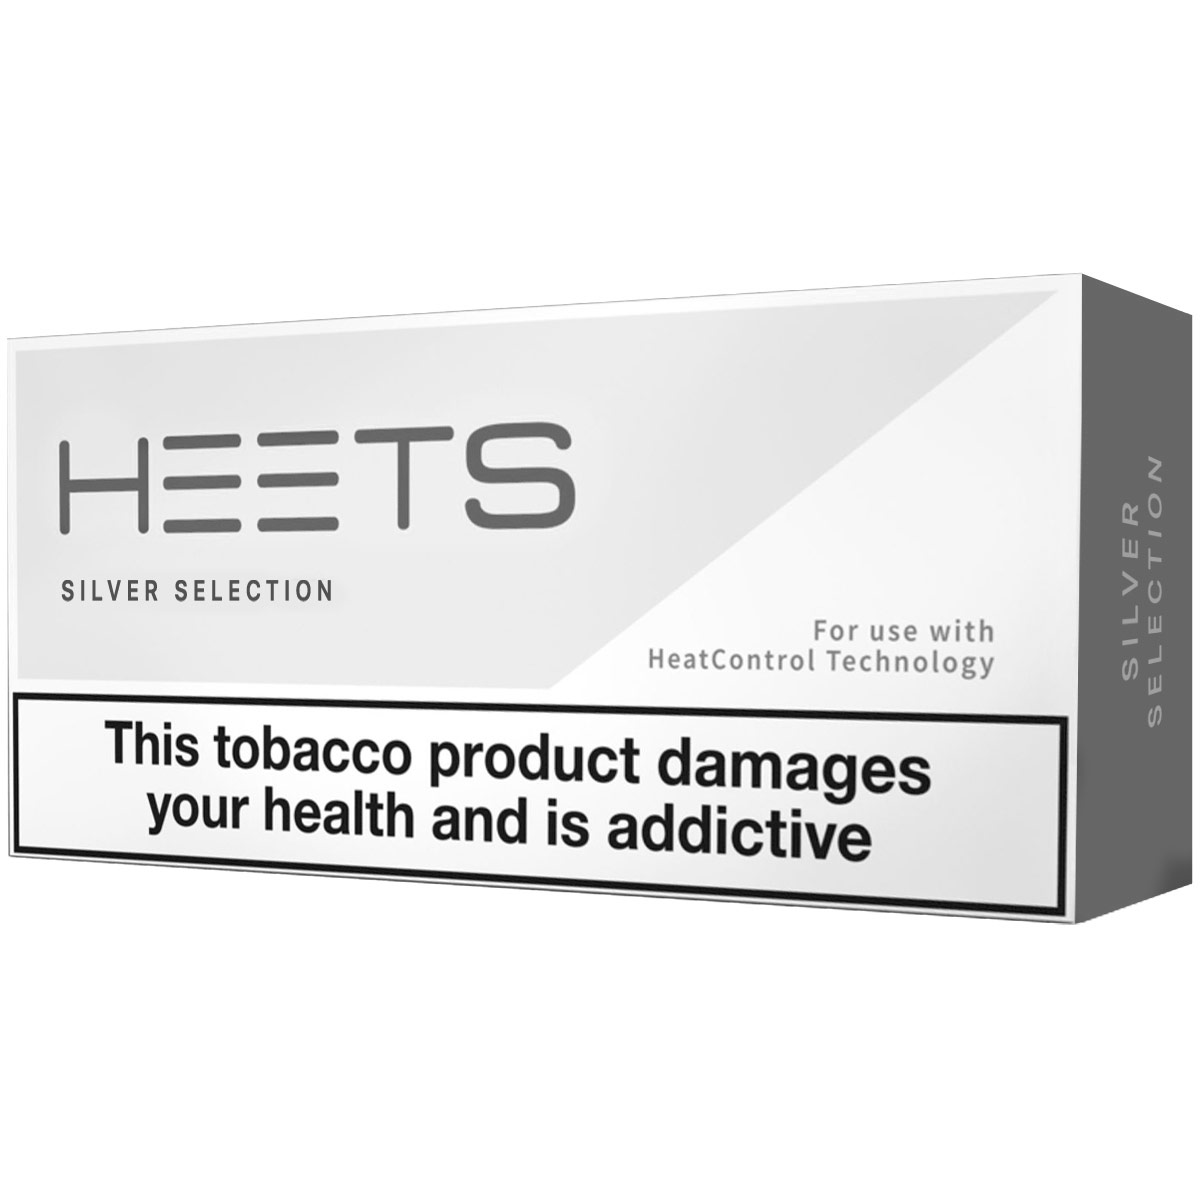 Heets - Silver Selection